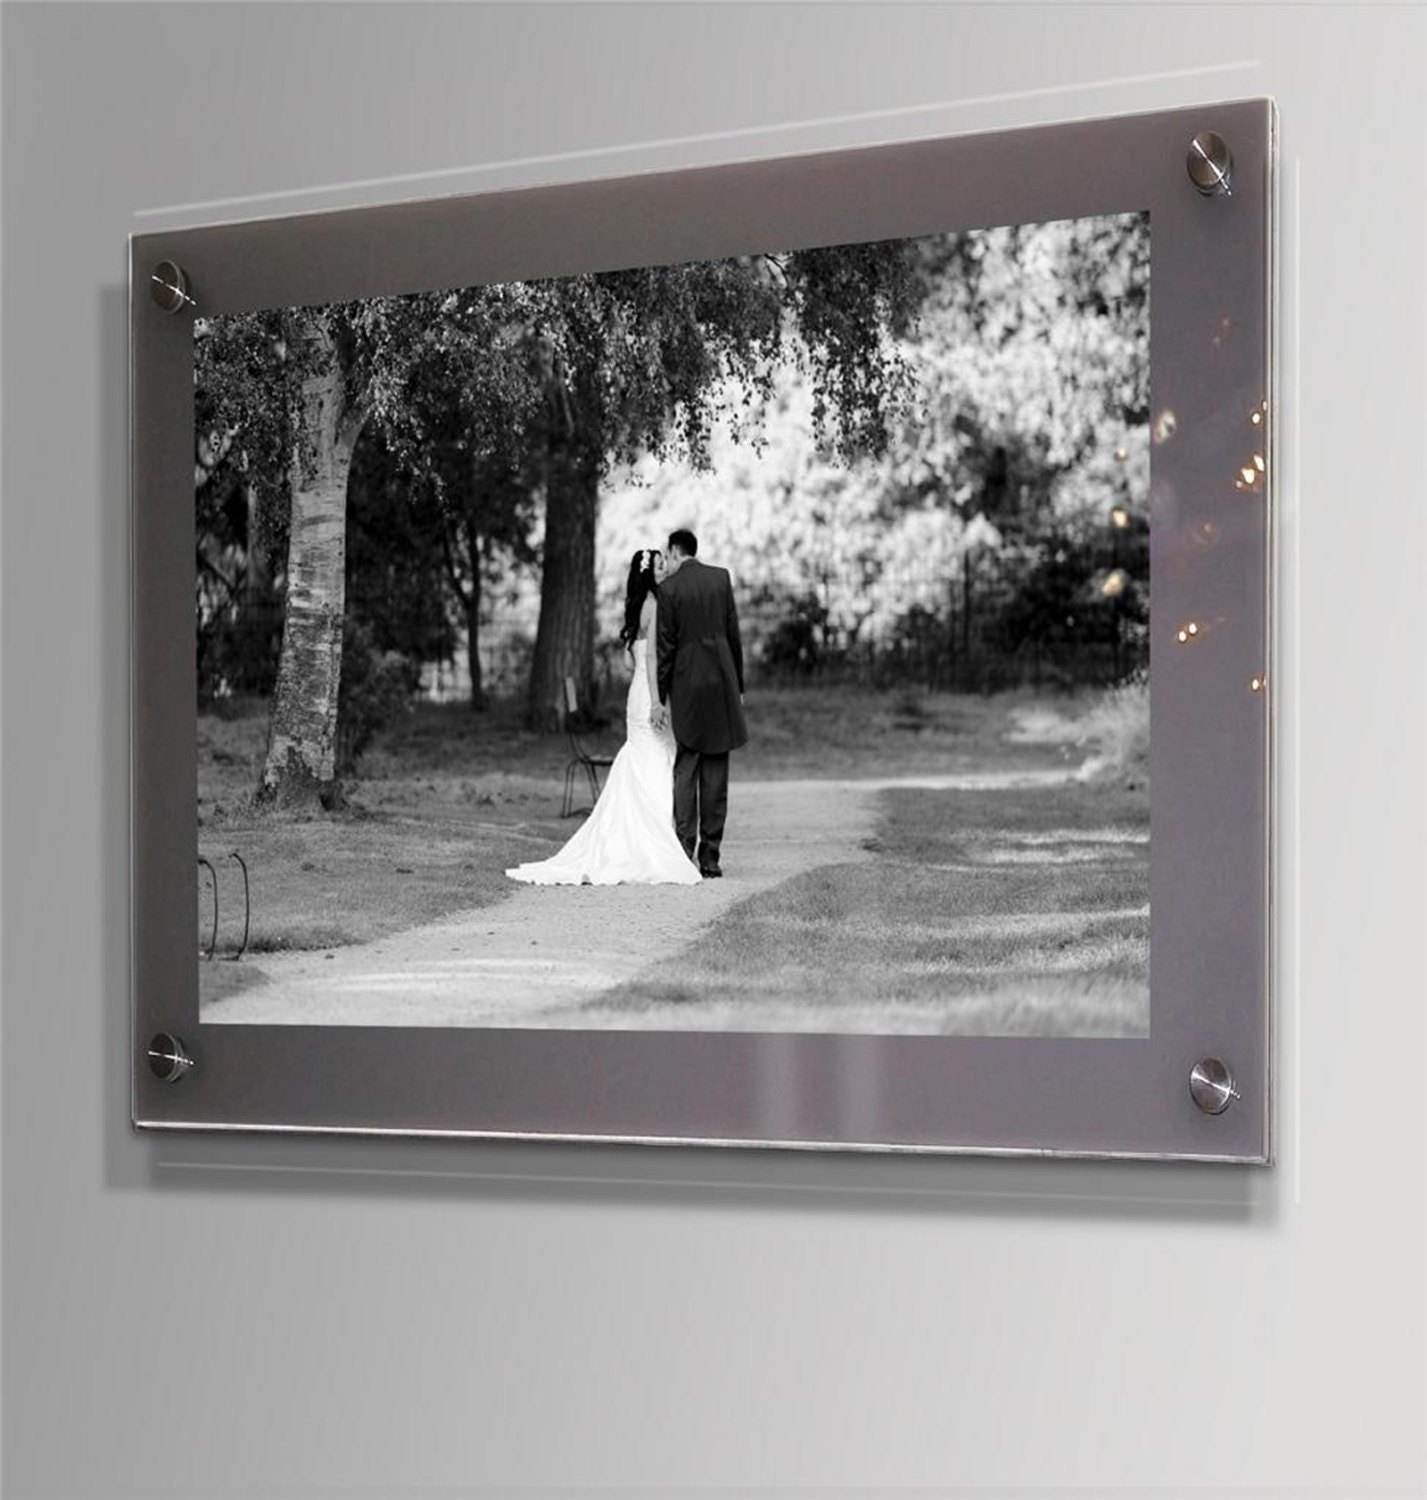 Cheshire Acrylic Grey 10mm Picture Photo Wall Frame For 8 X 10 10